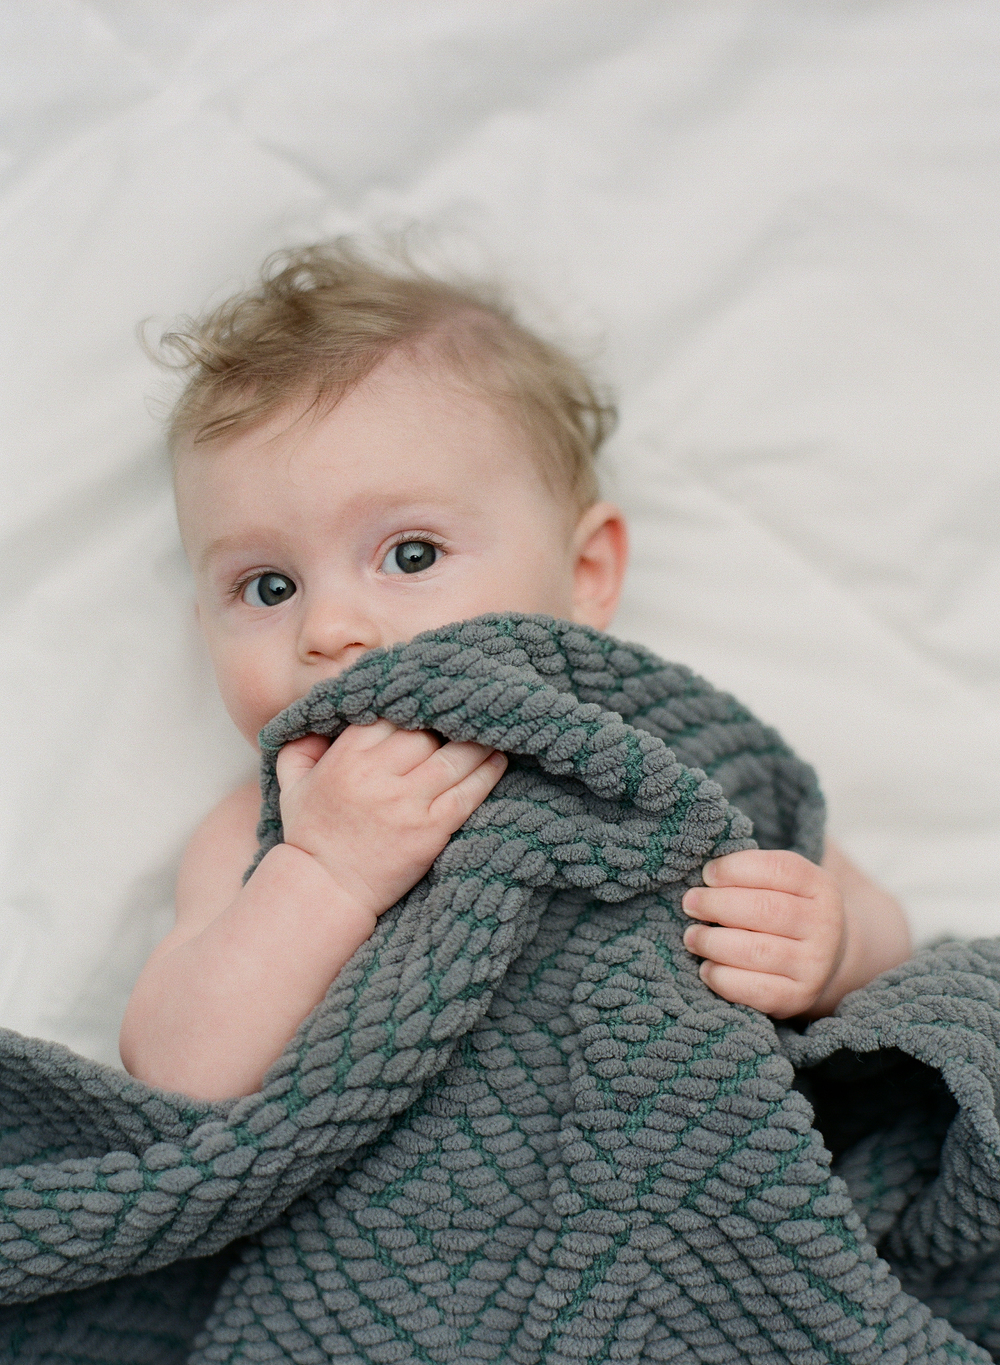 Newborn photography Seattle, by Sandra Coan. Studio photograph. Baby peaking up from under a blanket.